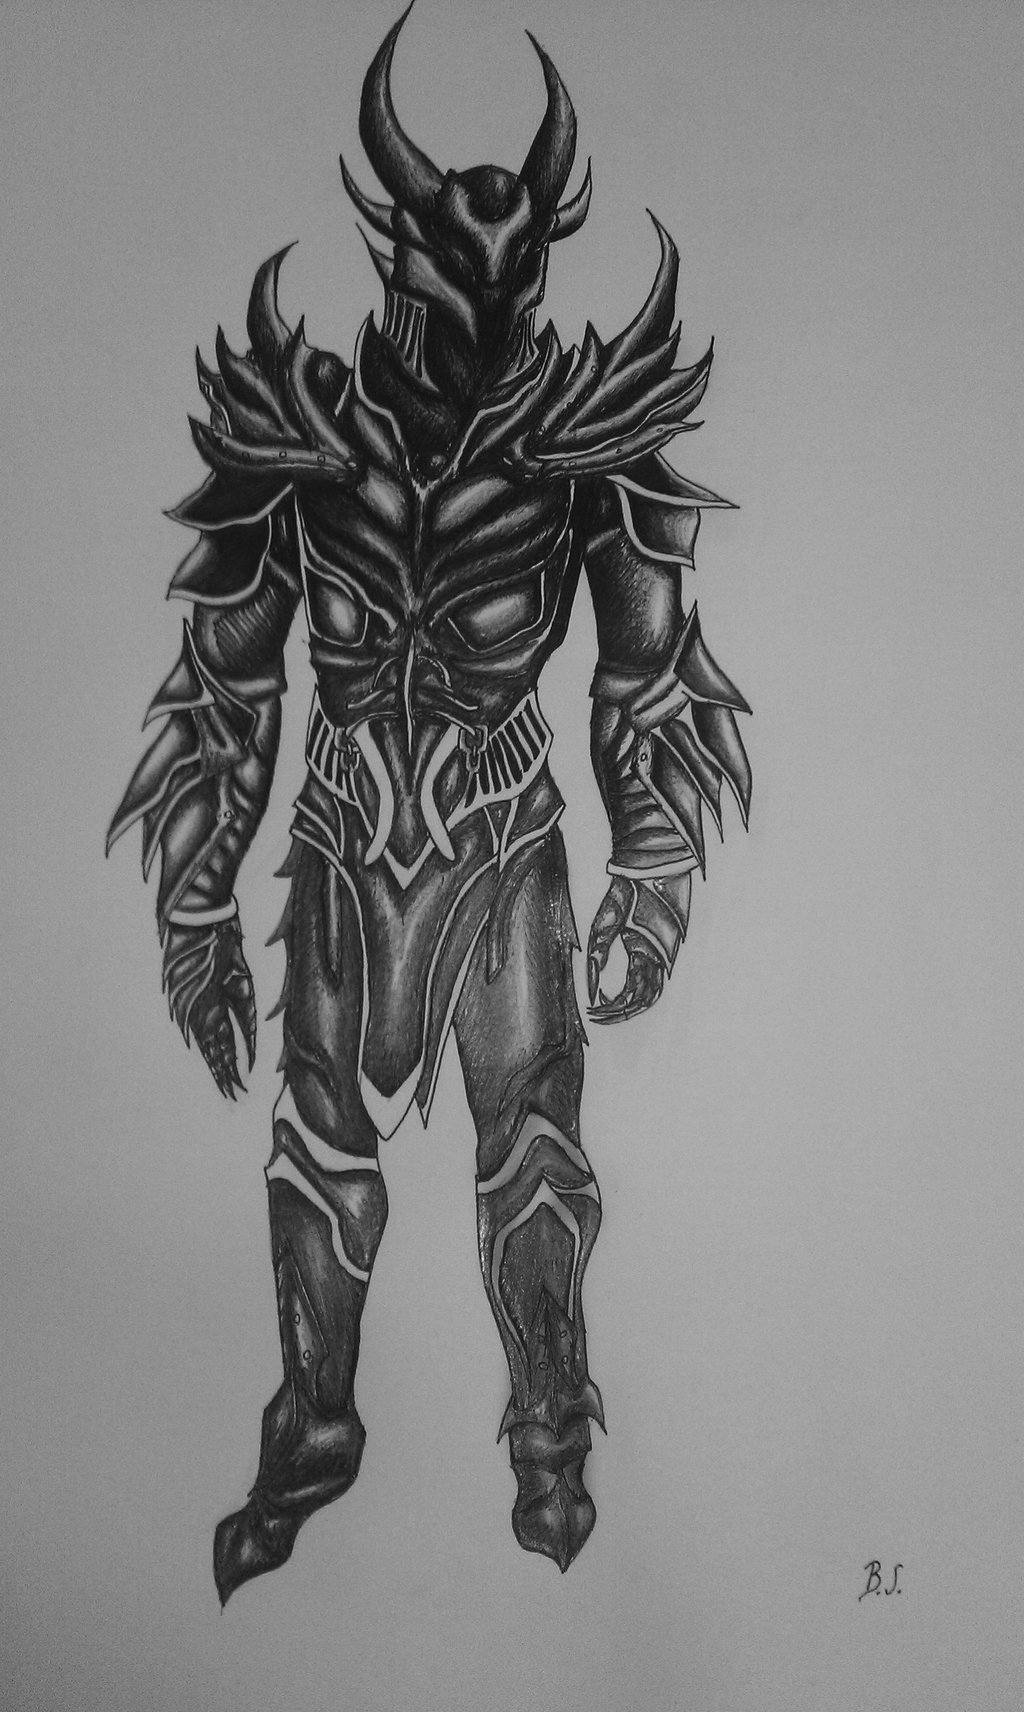 Drawn armor Drawn scratch from on armor